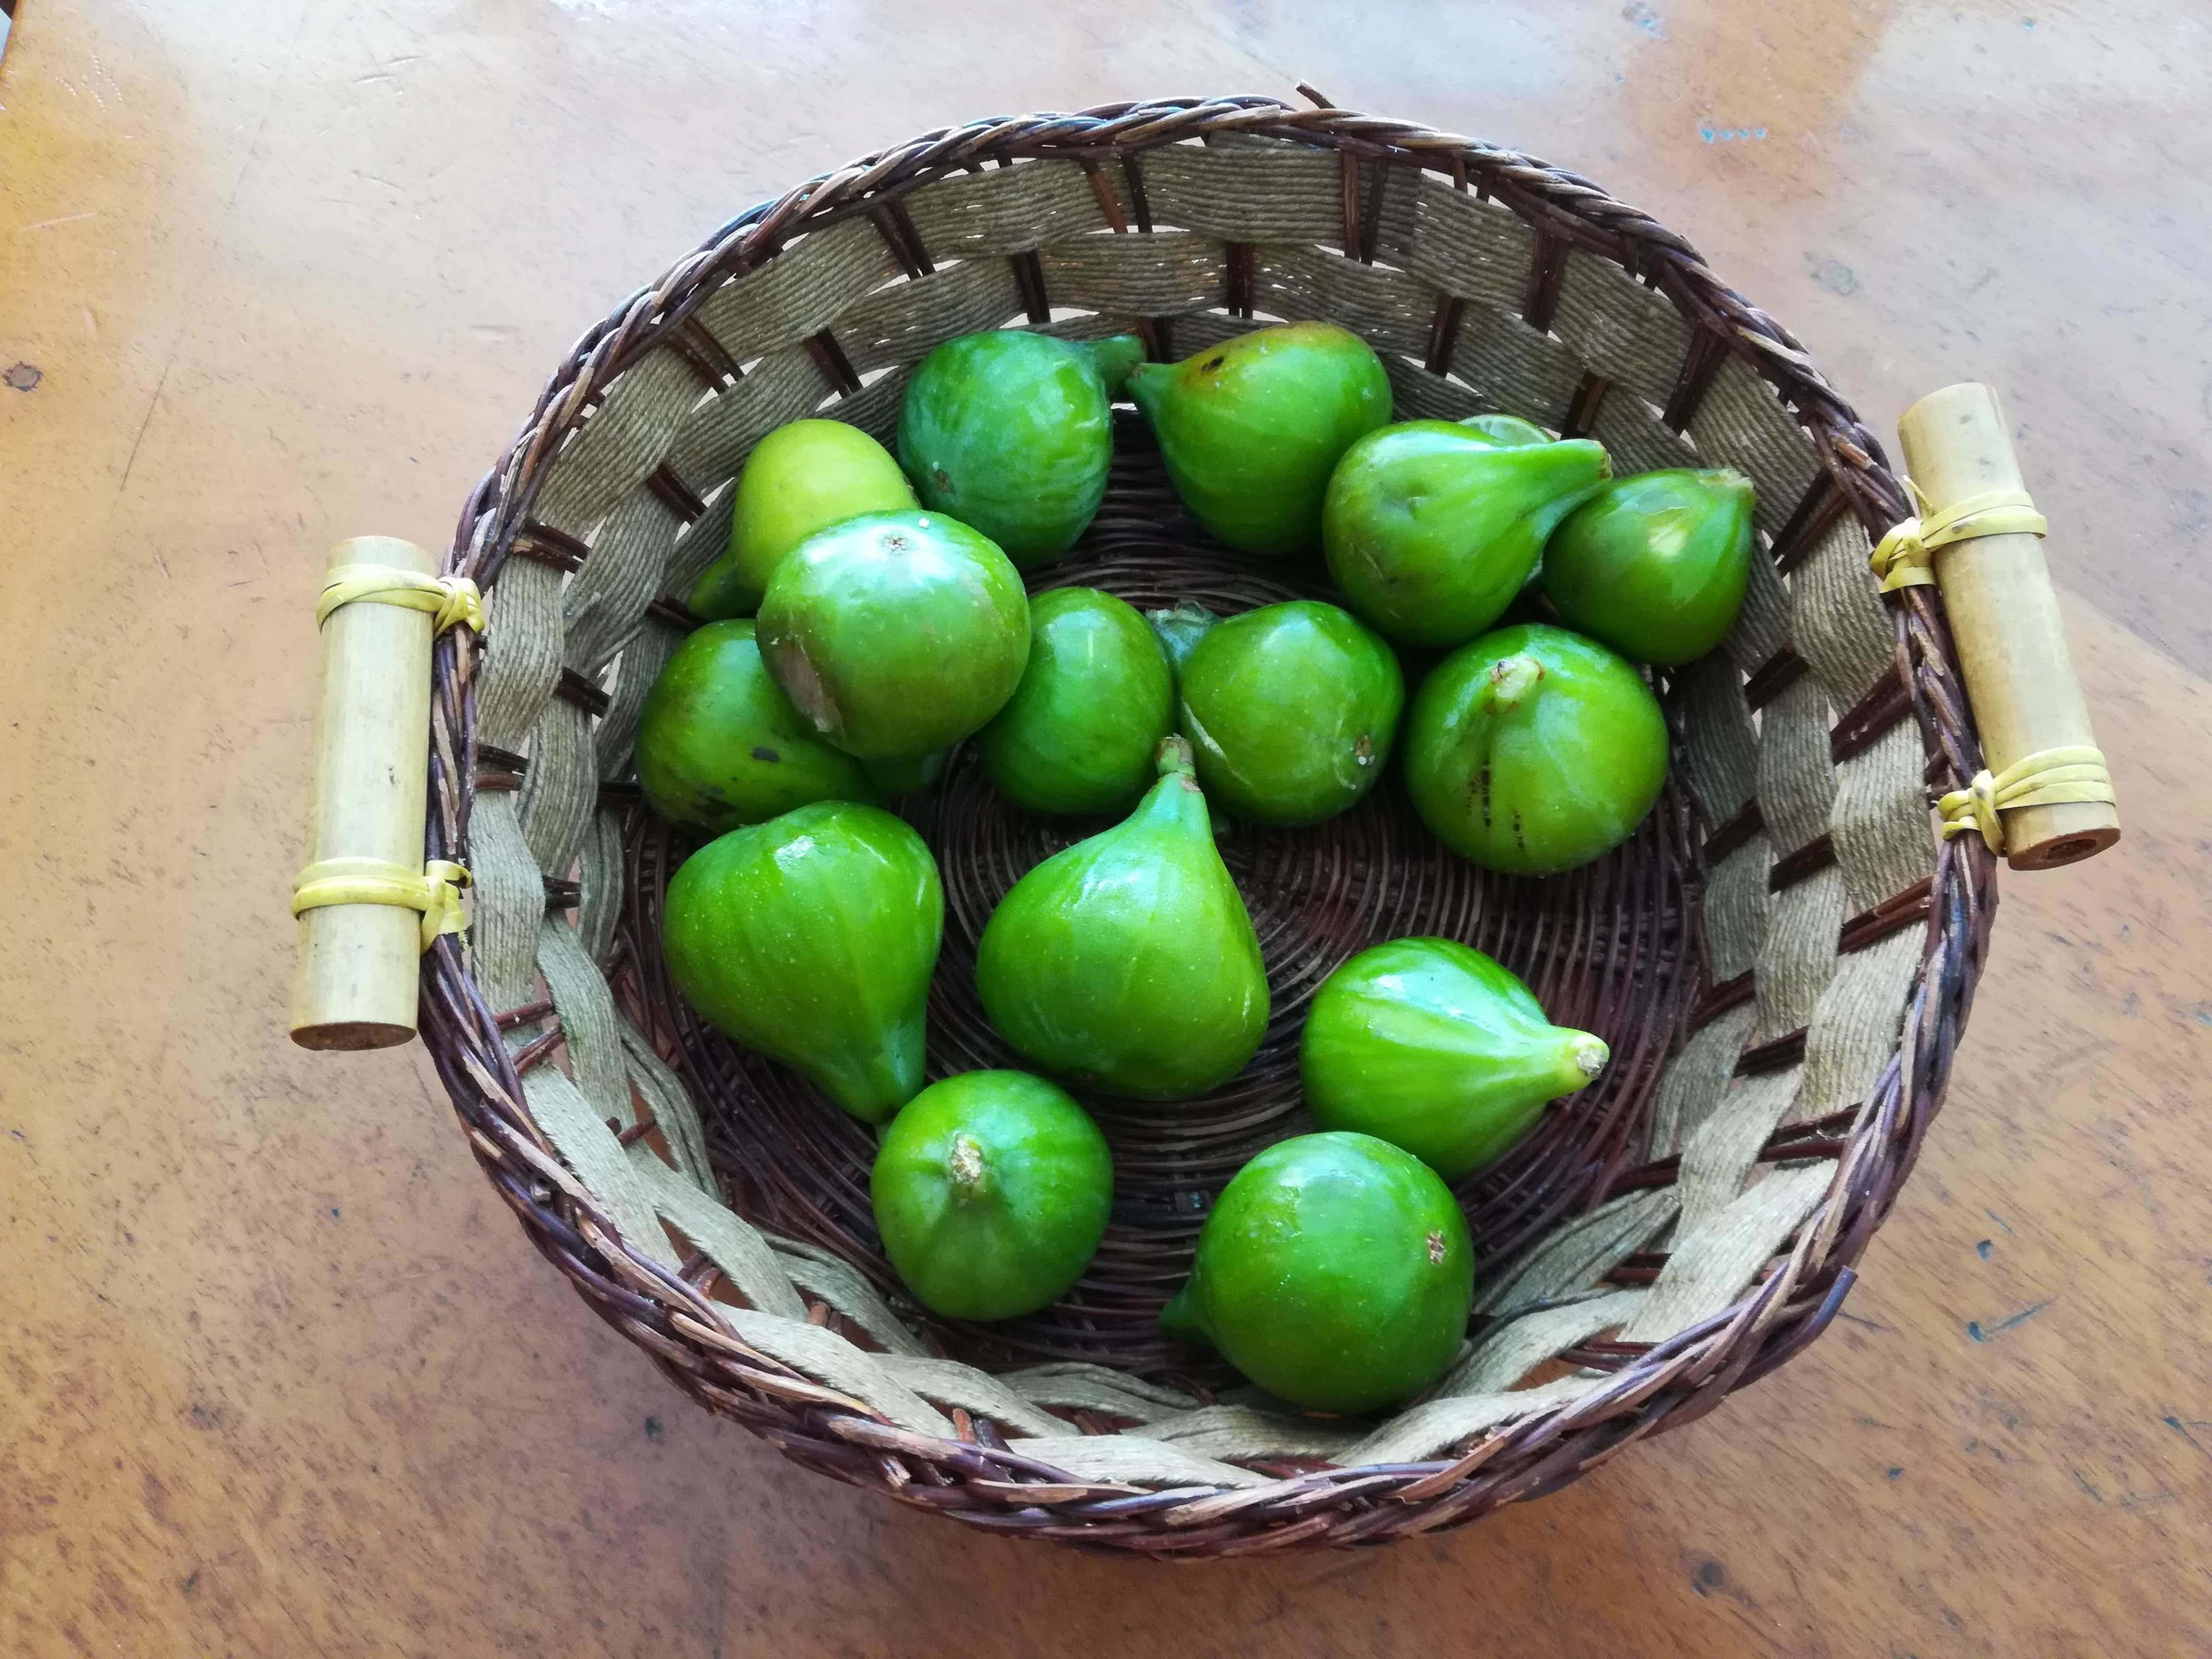 A crop of figs